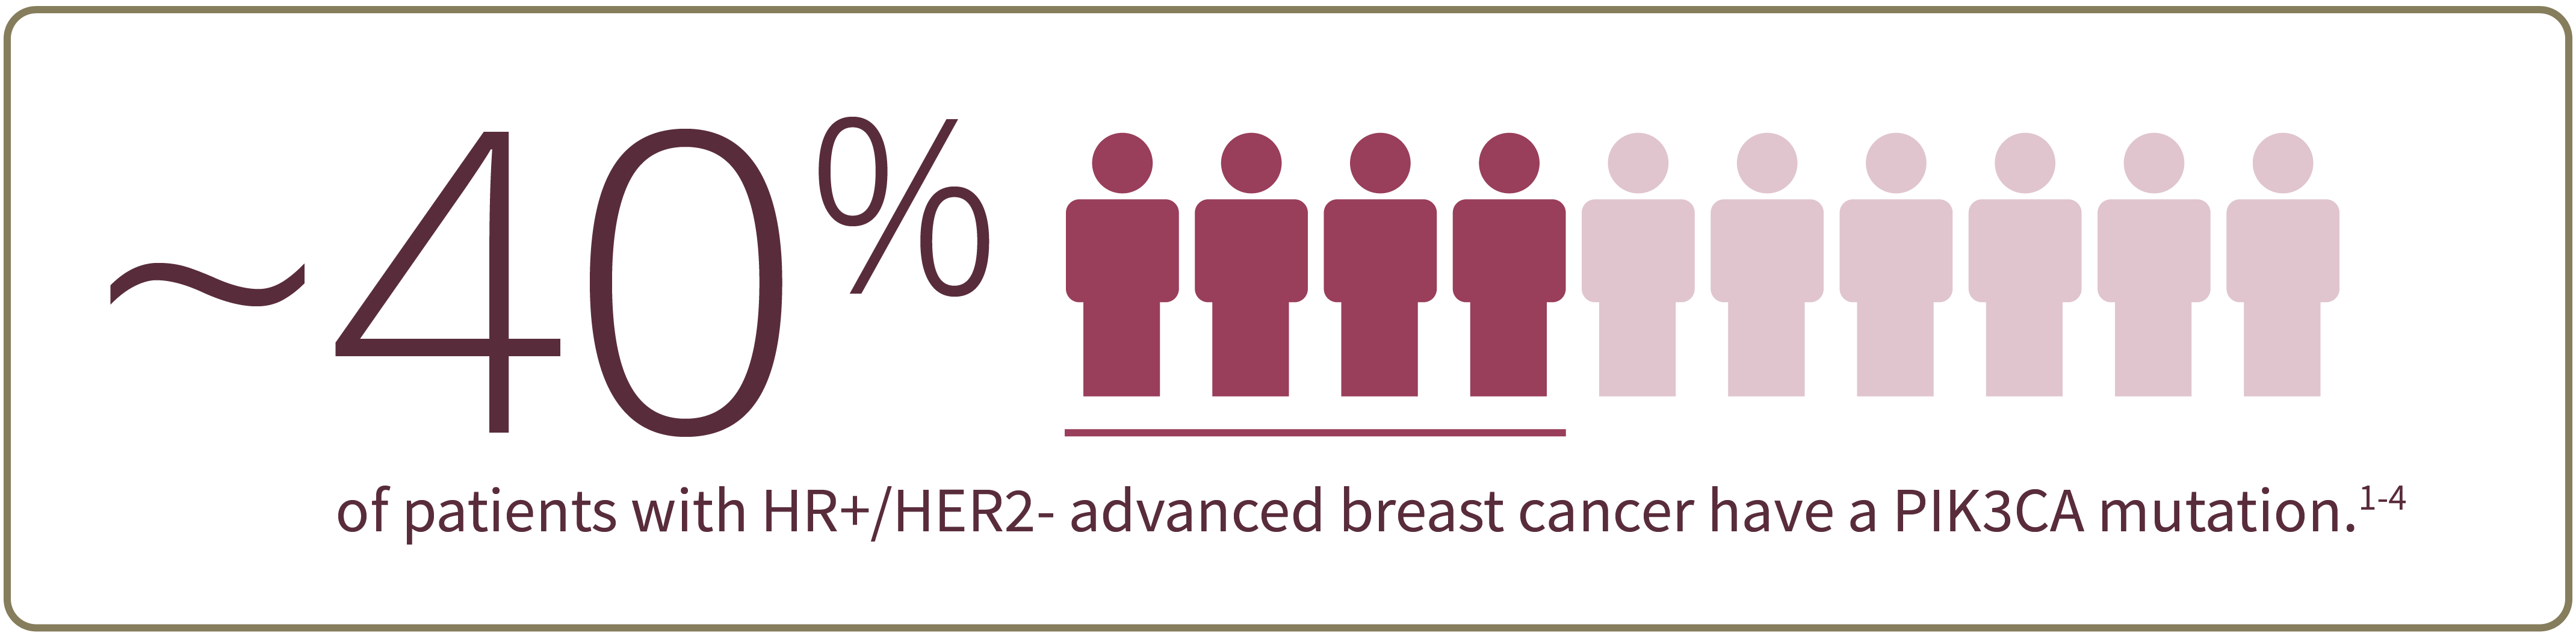 ~40% of patients with HR+/ HER2- advanced breast cancer have a PIK3CA mutation